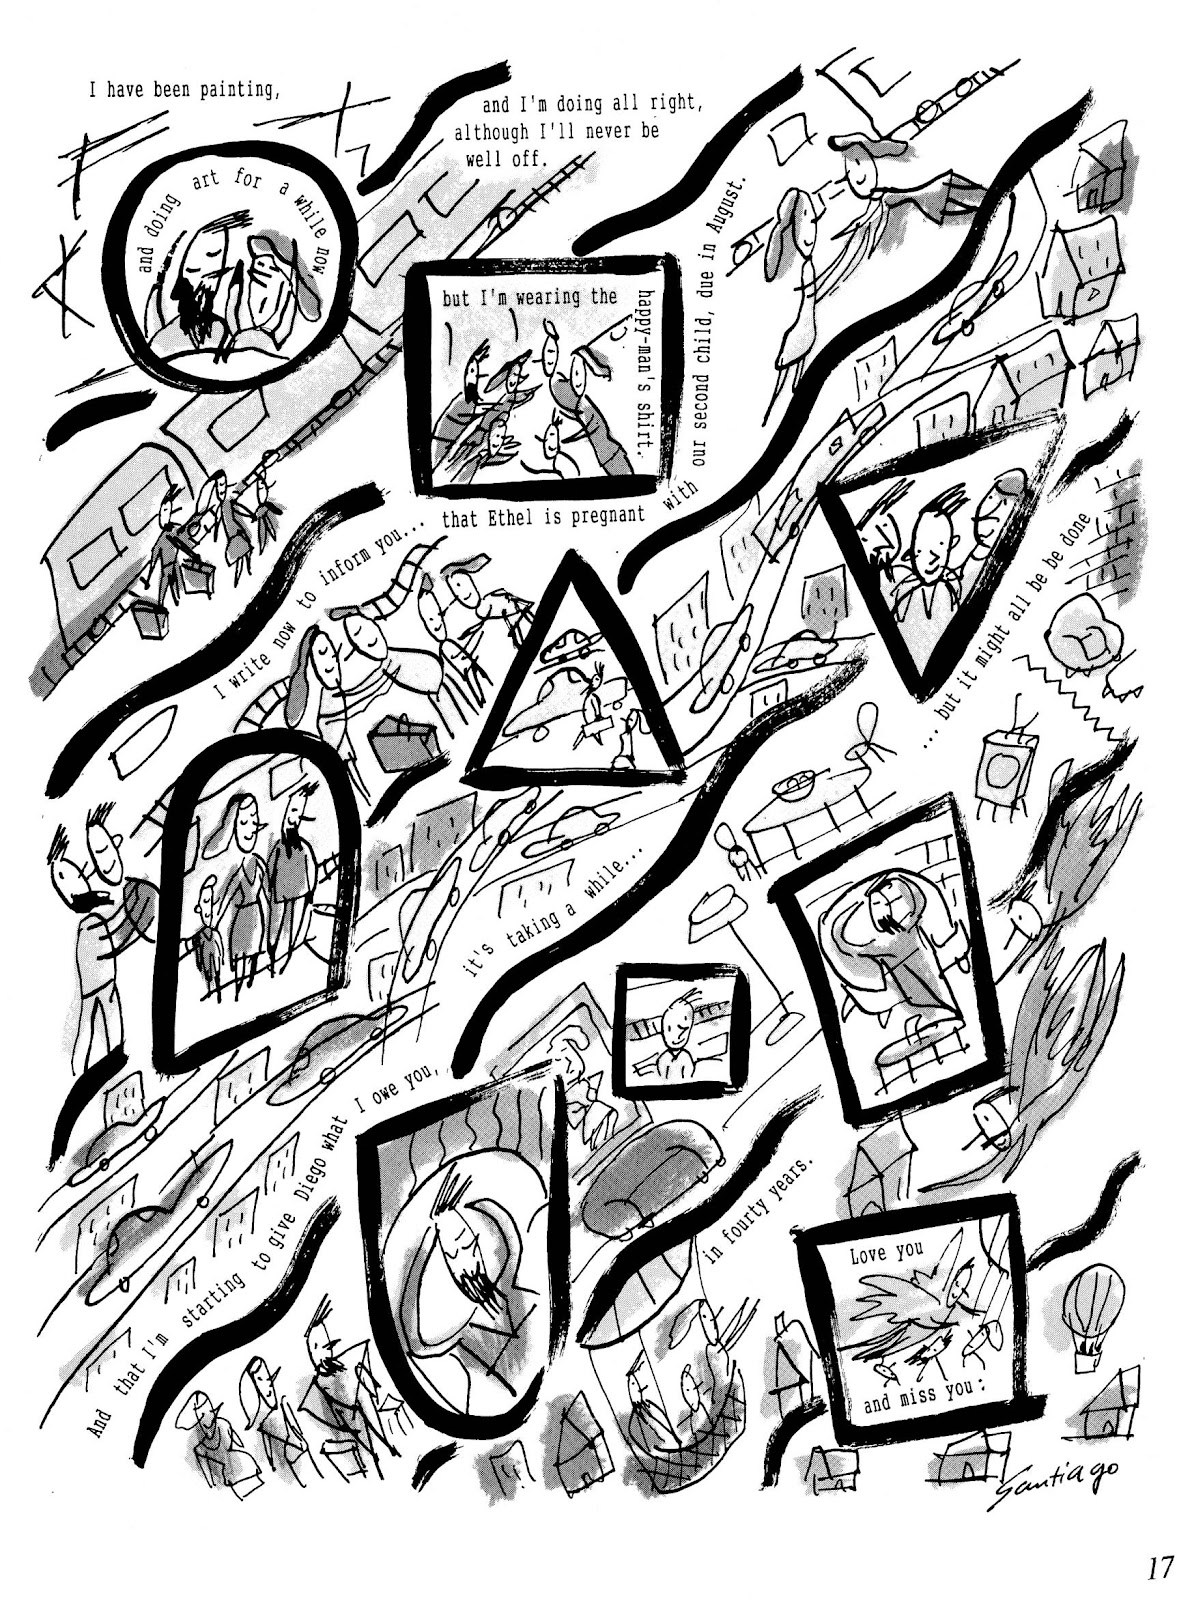 Drawn & Quarterly (1990) issue 8 - Page 19